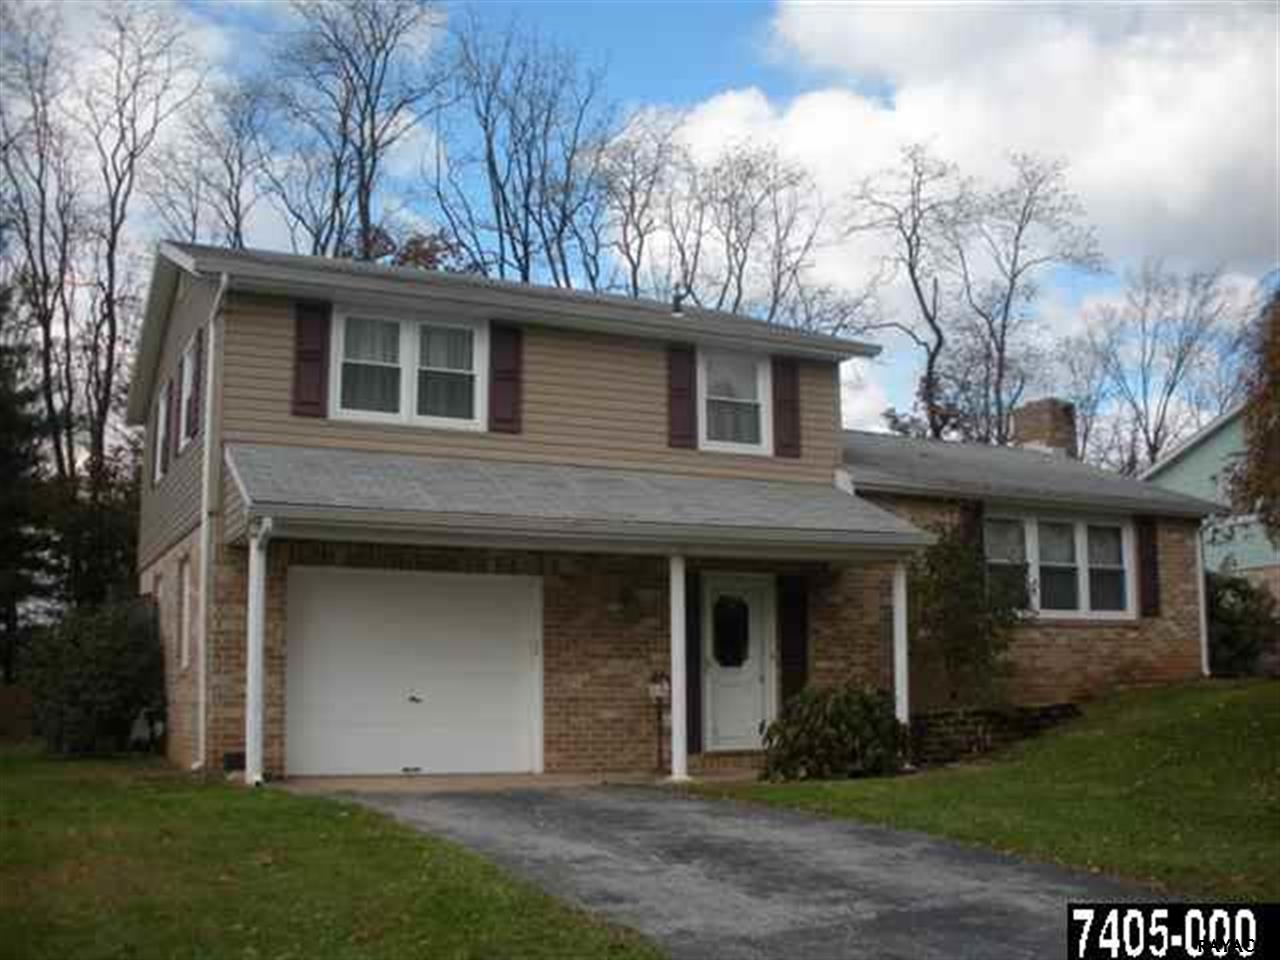 3029 Honey Run Dr, York, PA 17408